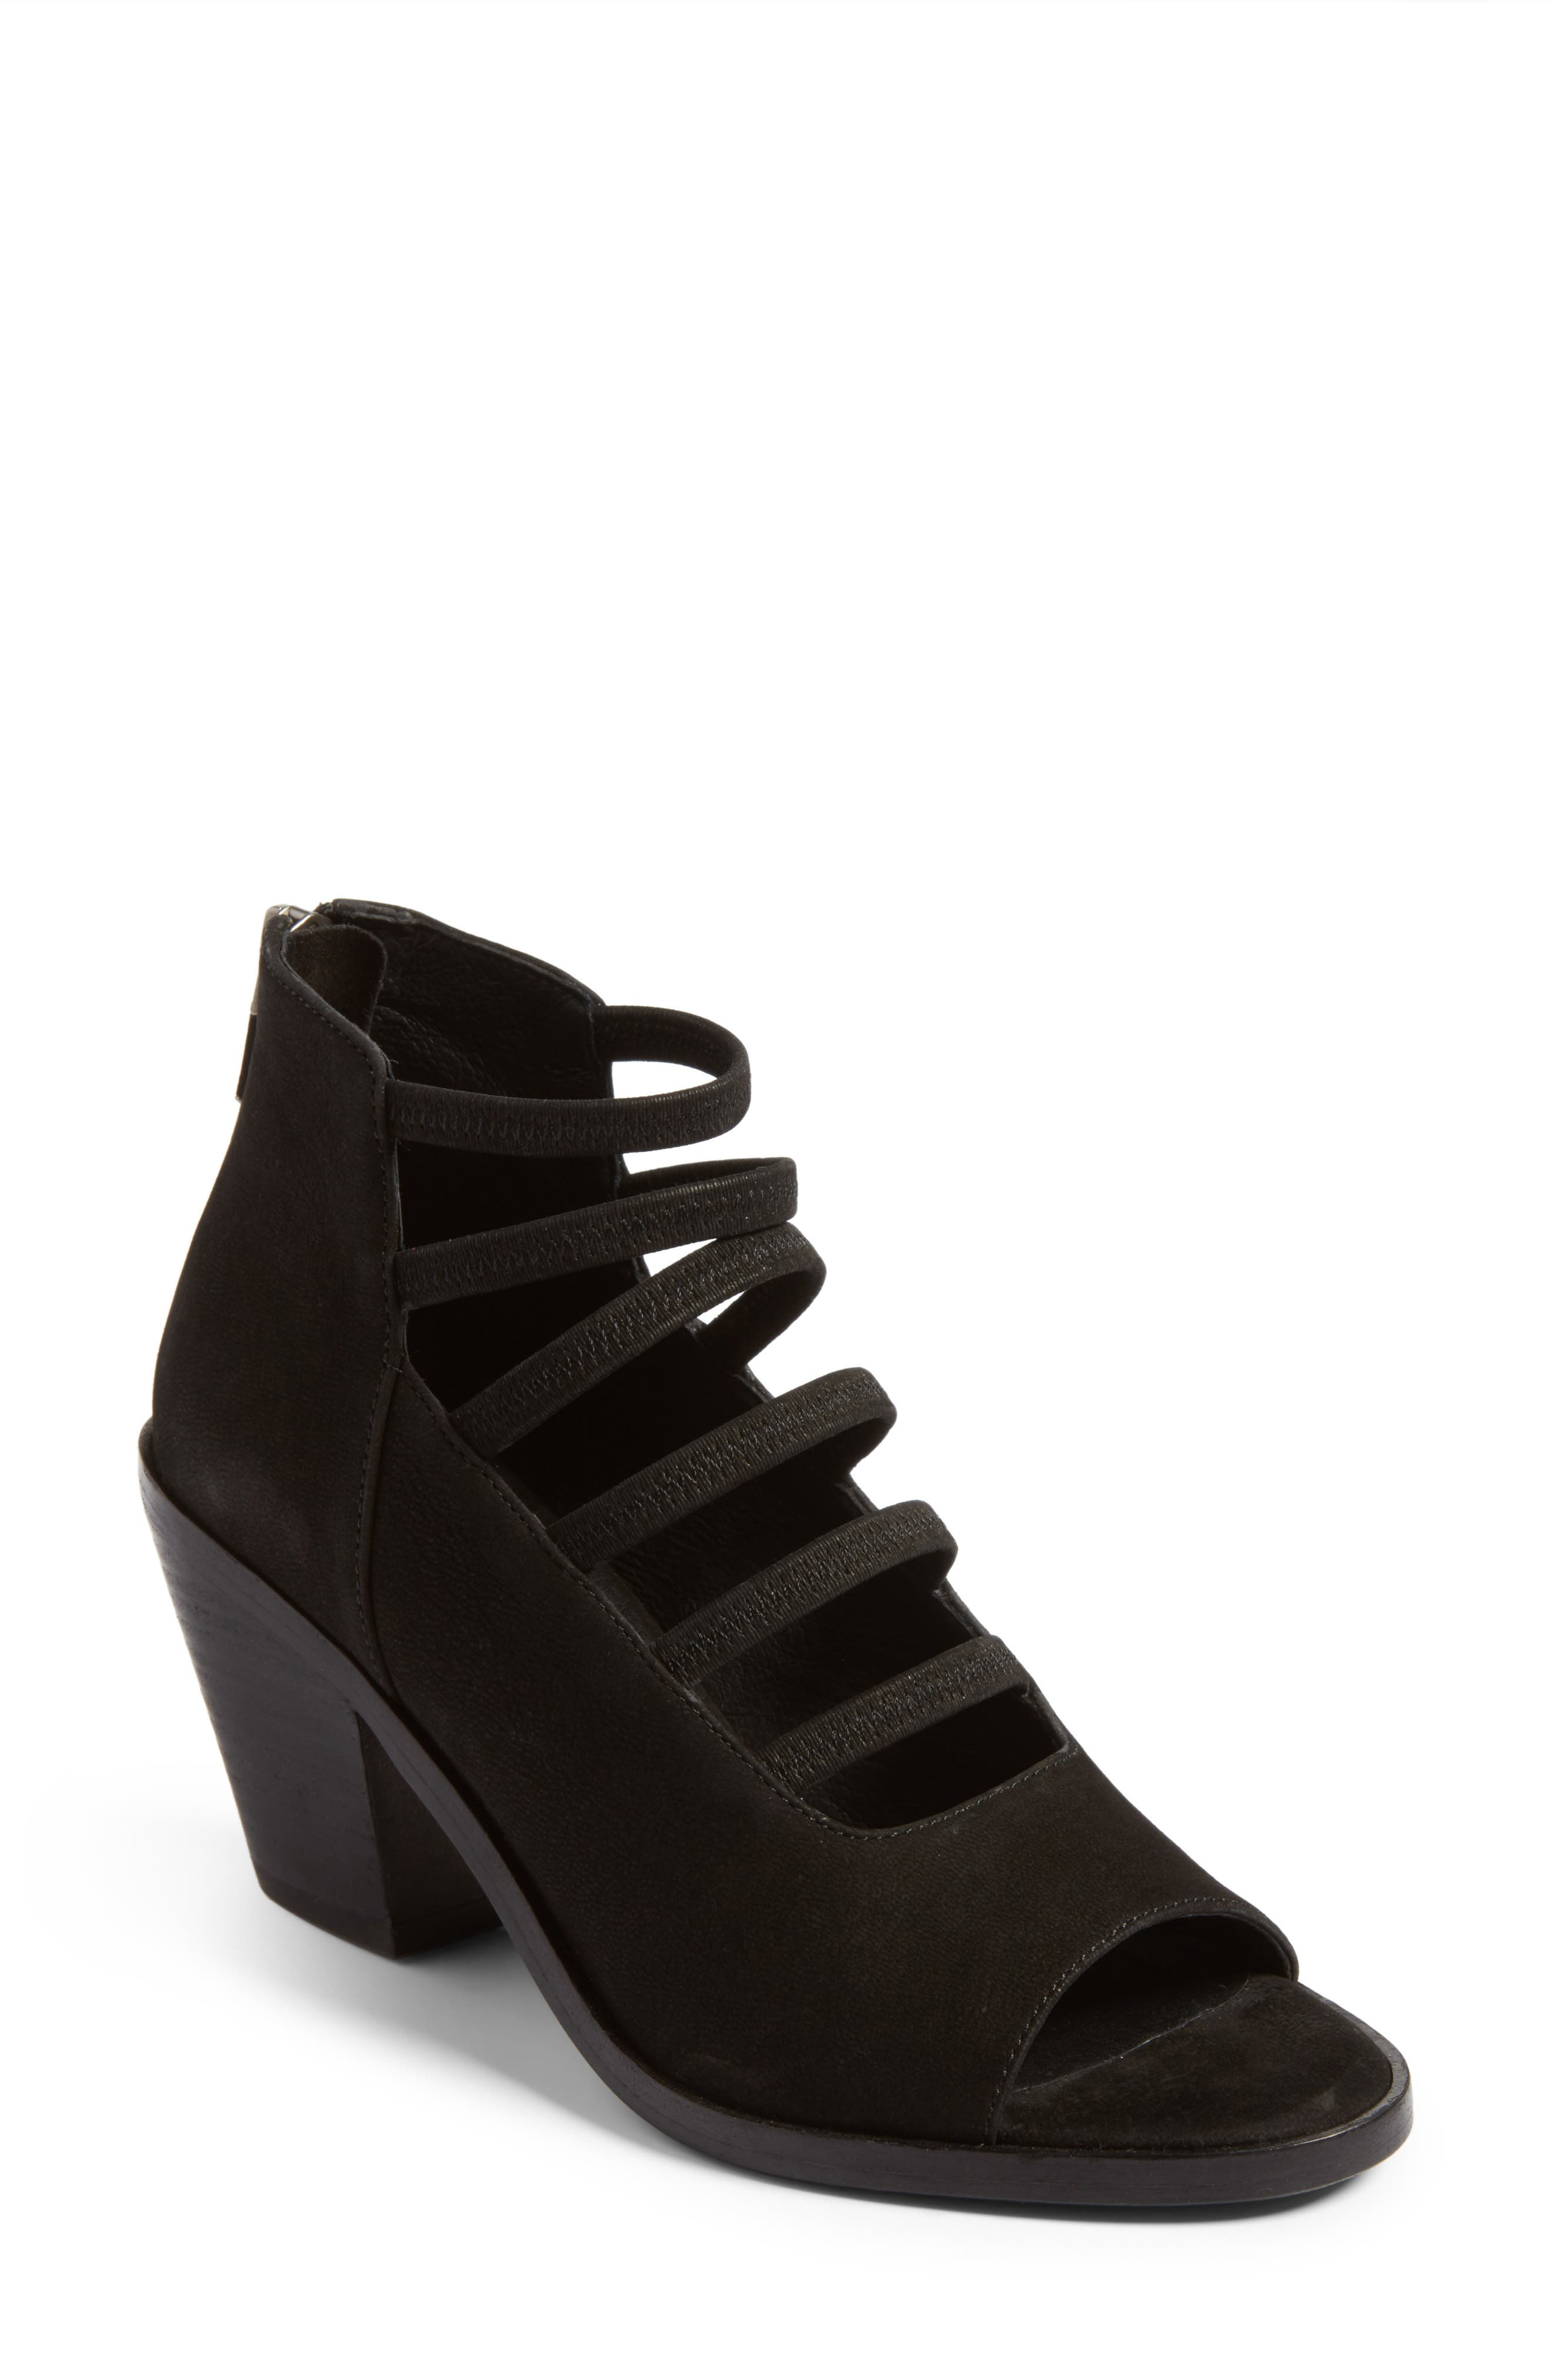 EILEEN FISHER James Strappy Sandal